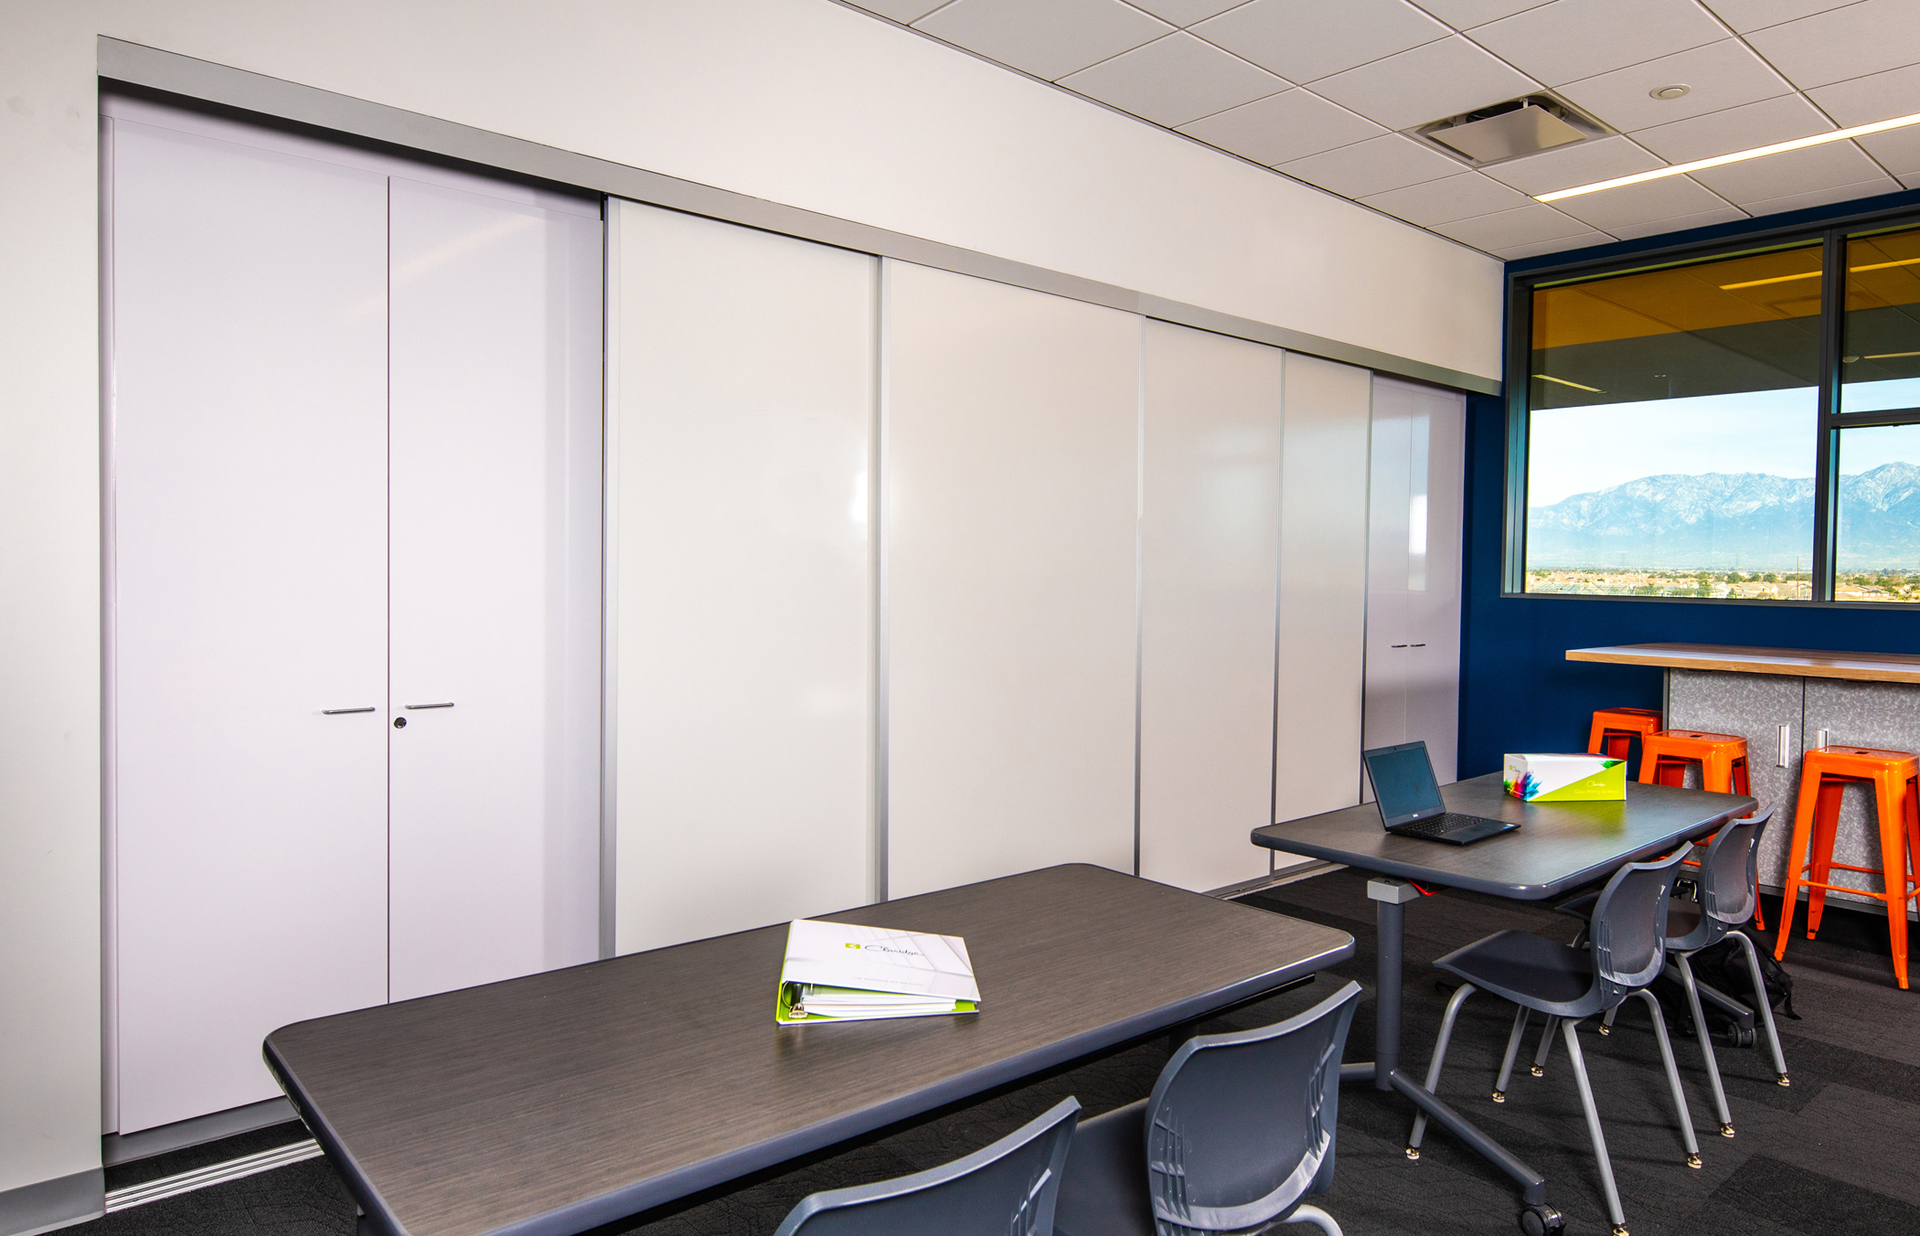 Sliding porcelain sliding doors create a versatile space for work and collaboration between peers and teachers.